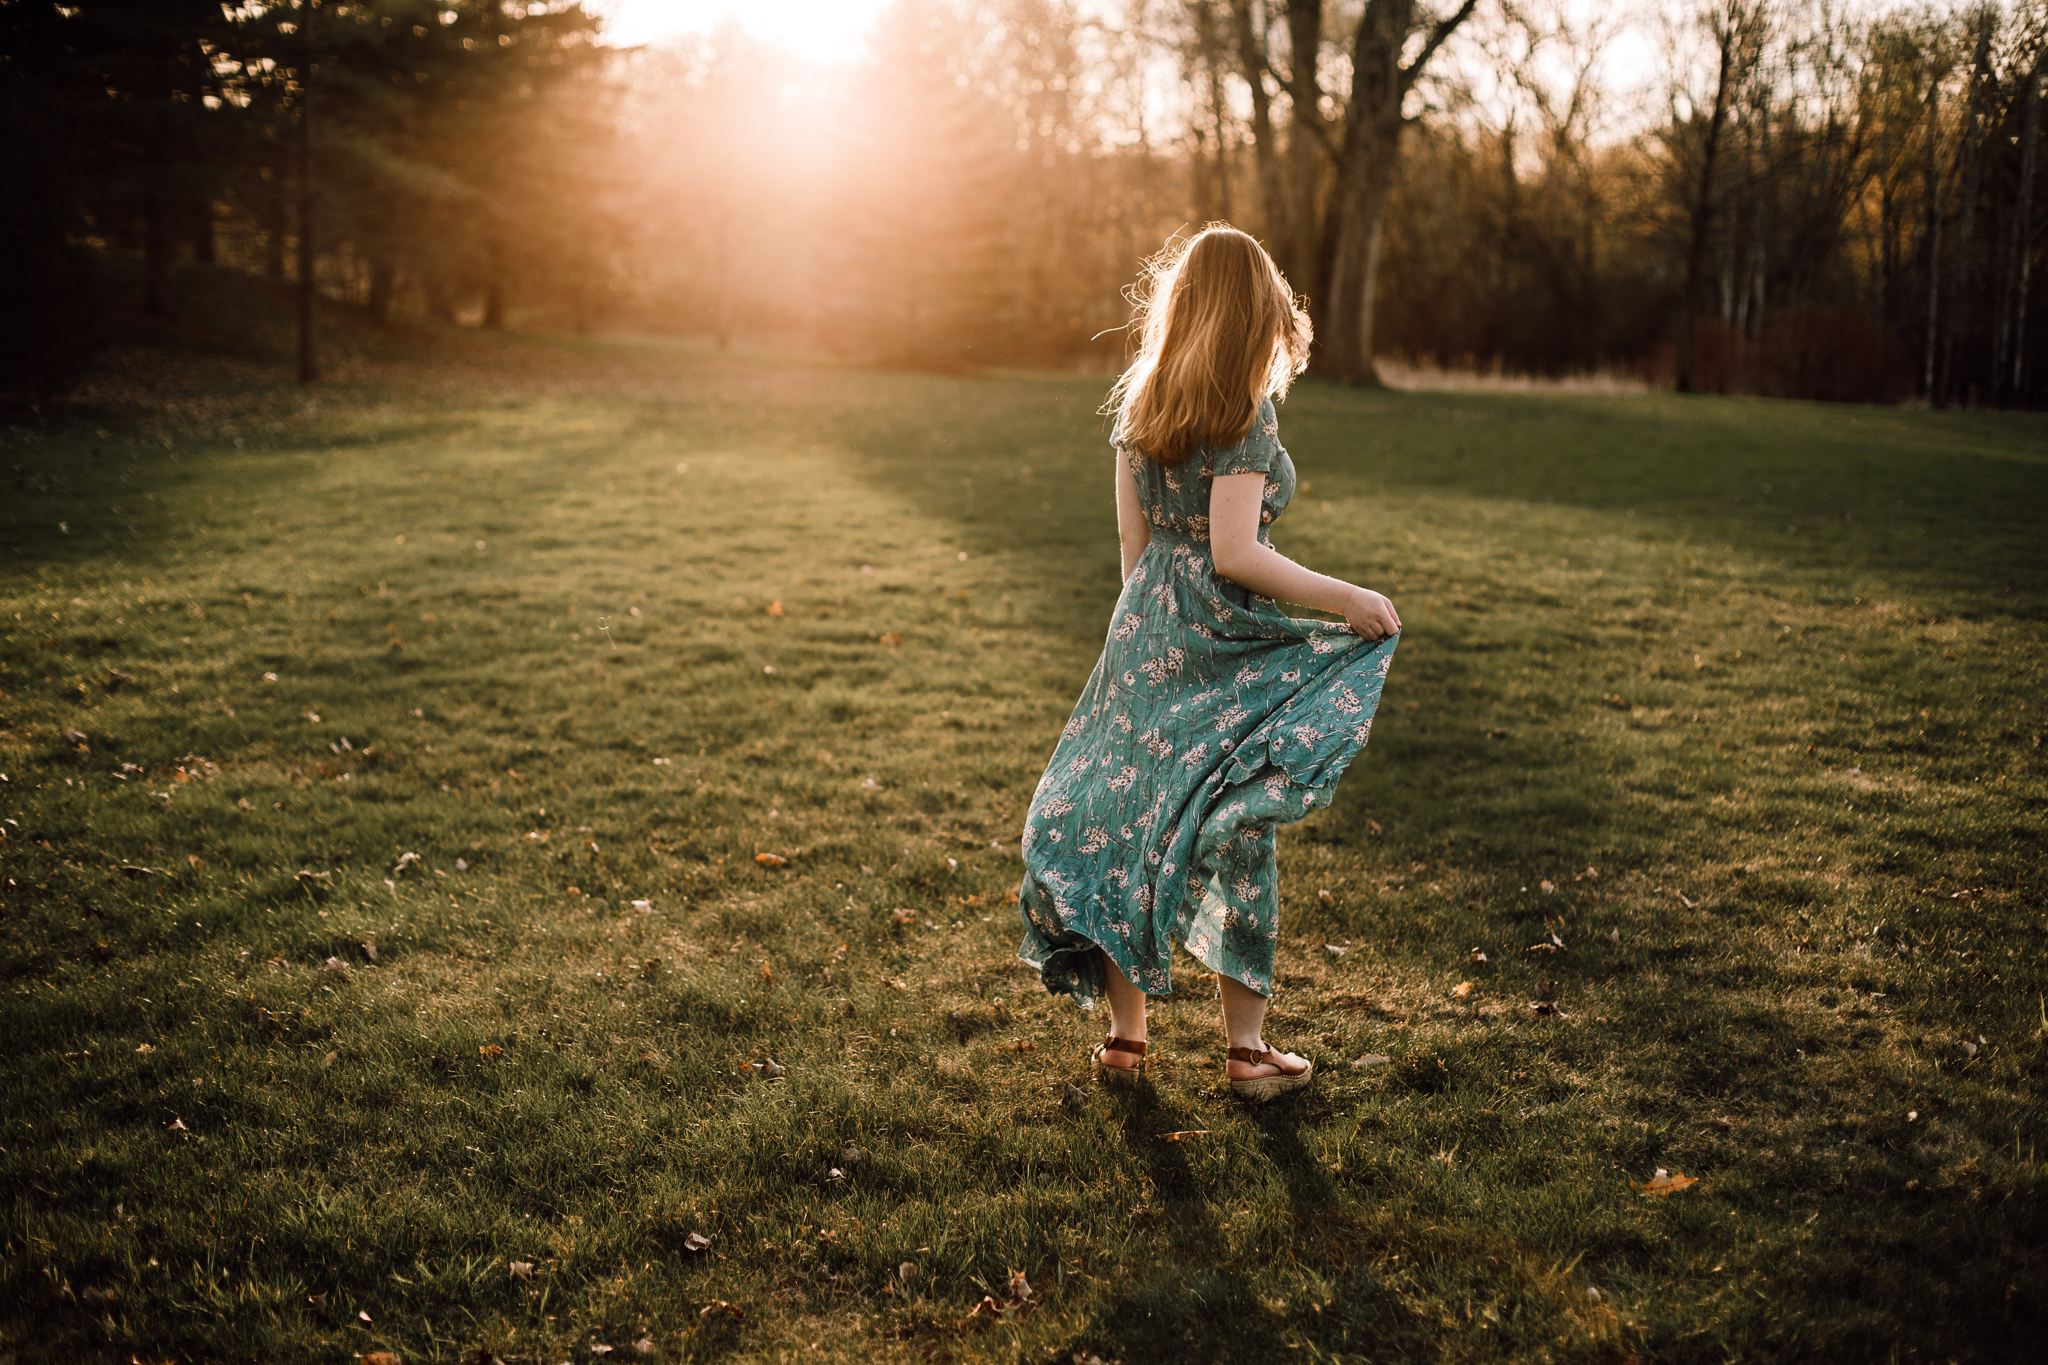 dancing woman in spring field - AMG Photography